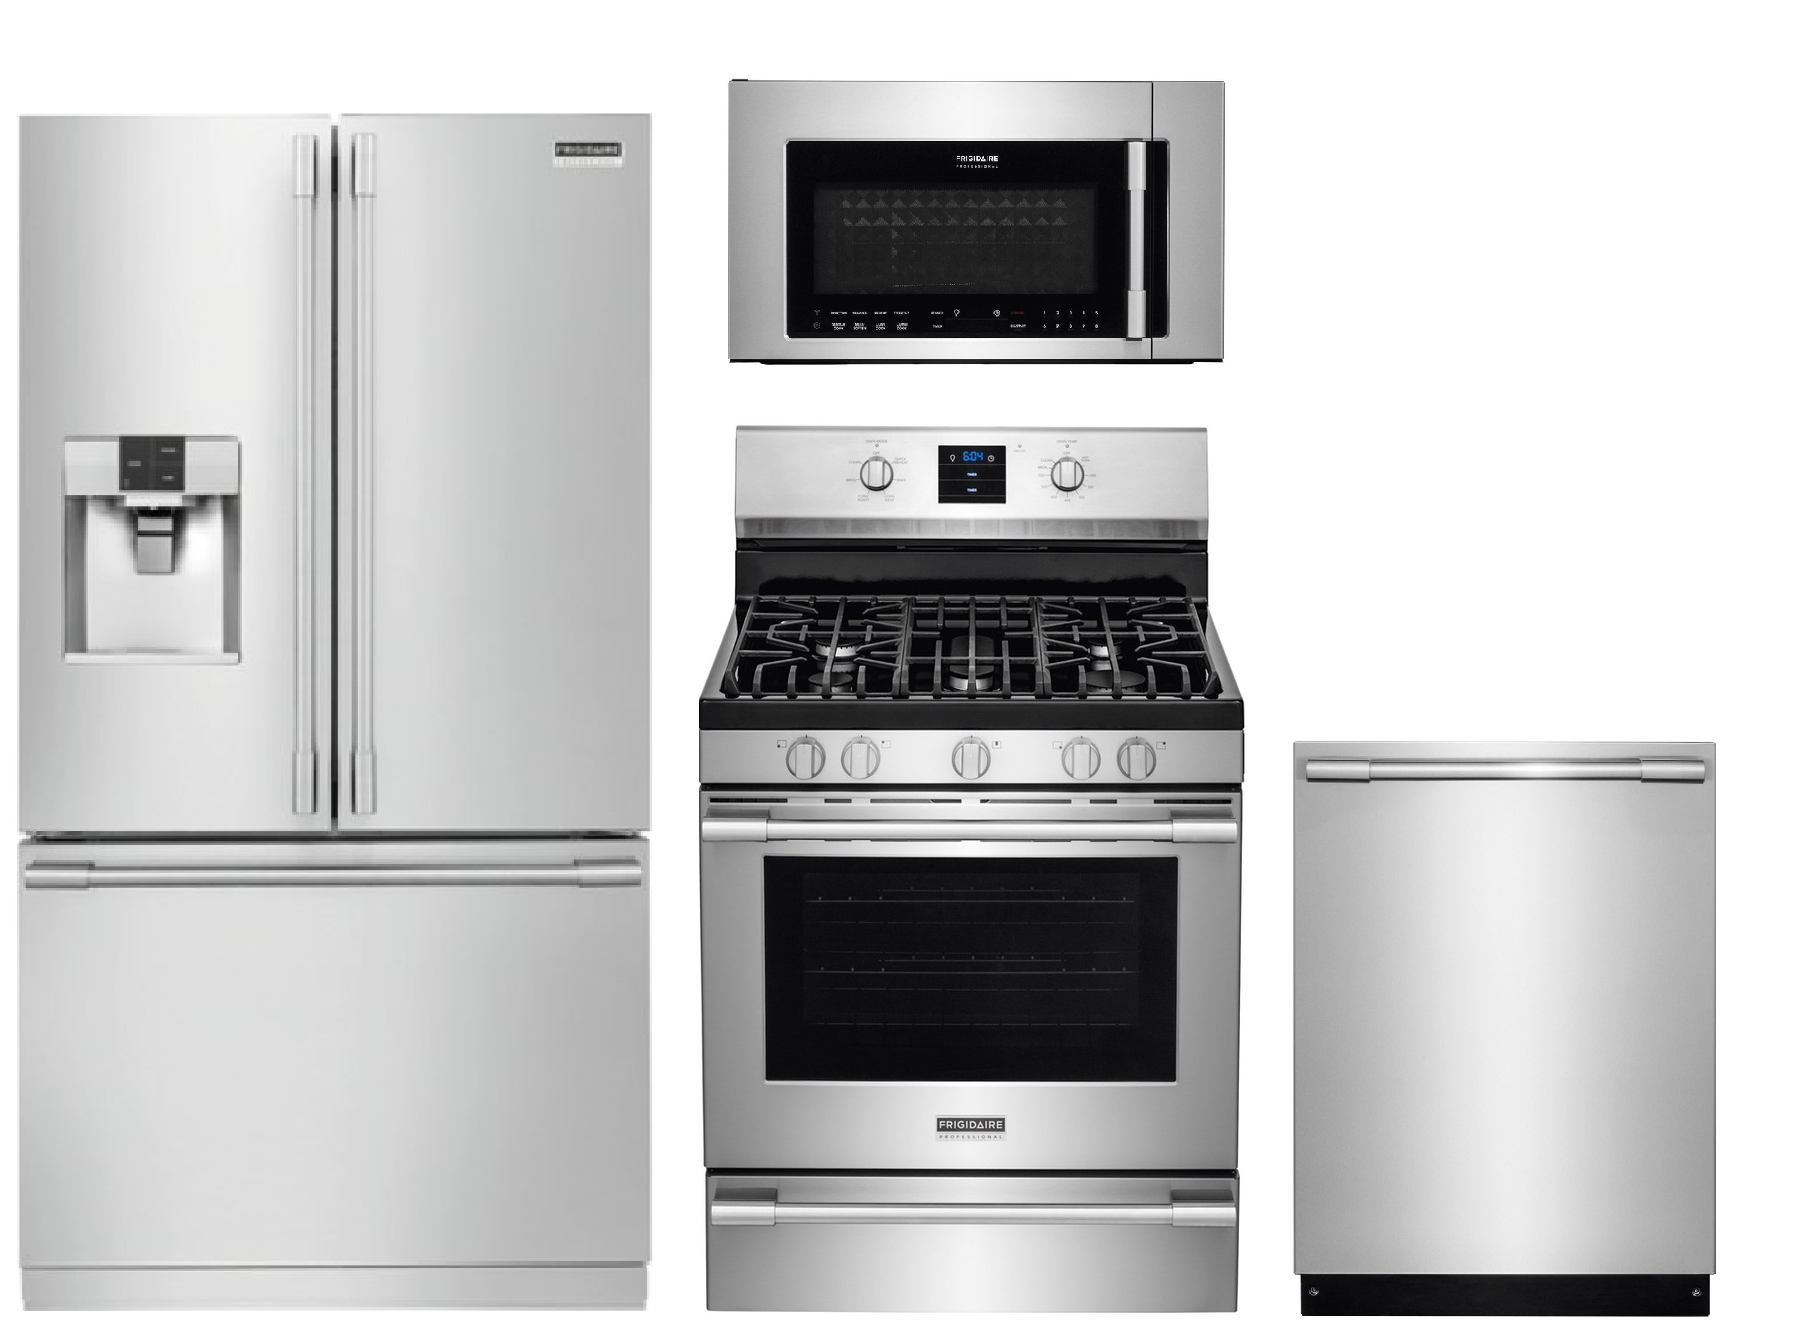 Frigidaire Professional Fpbs2777rf 27 8 Cu Ft Refrigerator Fpbm3077rf 30 In Over The Range Microwave Fpgf3077qf 5 6 Cu Ft Self Cleaning Convection Gas Ra Kitchen Appliance Packages Frigidaire Professional Kitchen Appliances